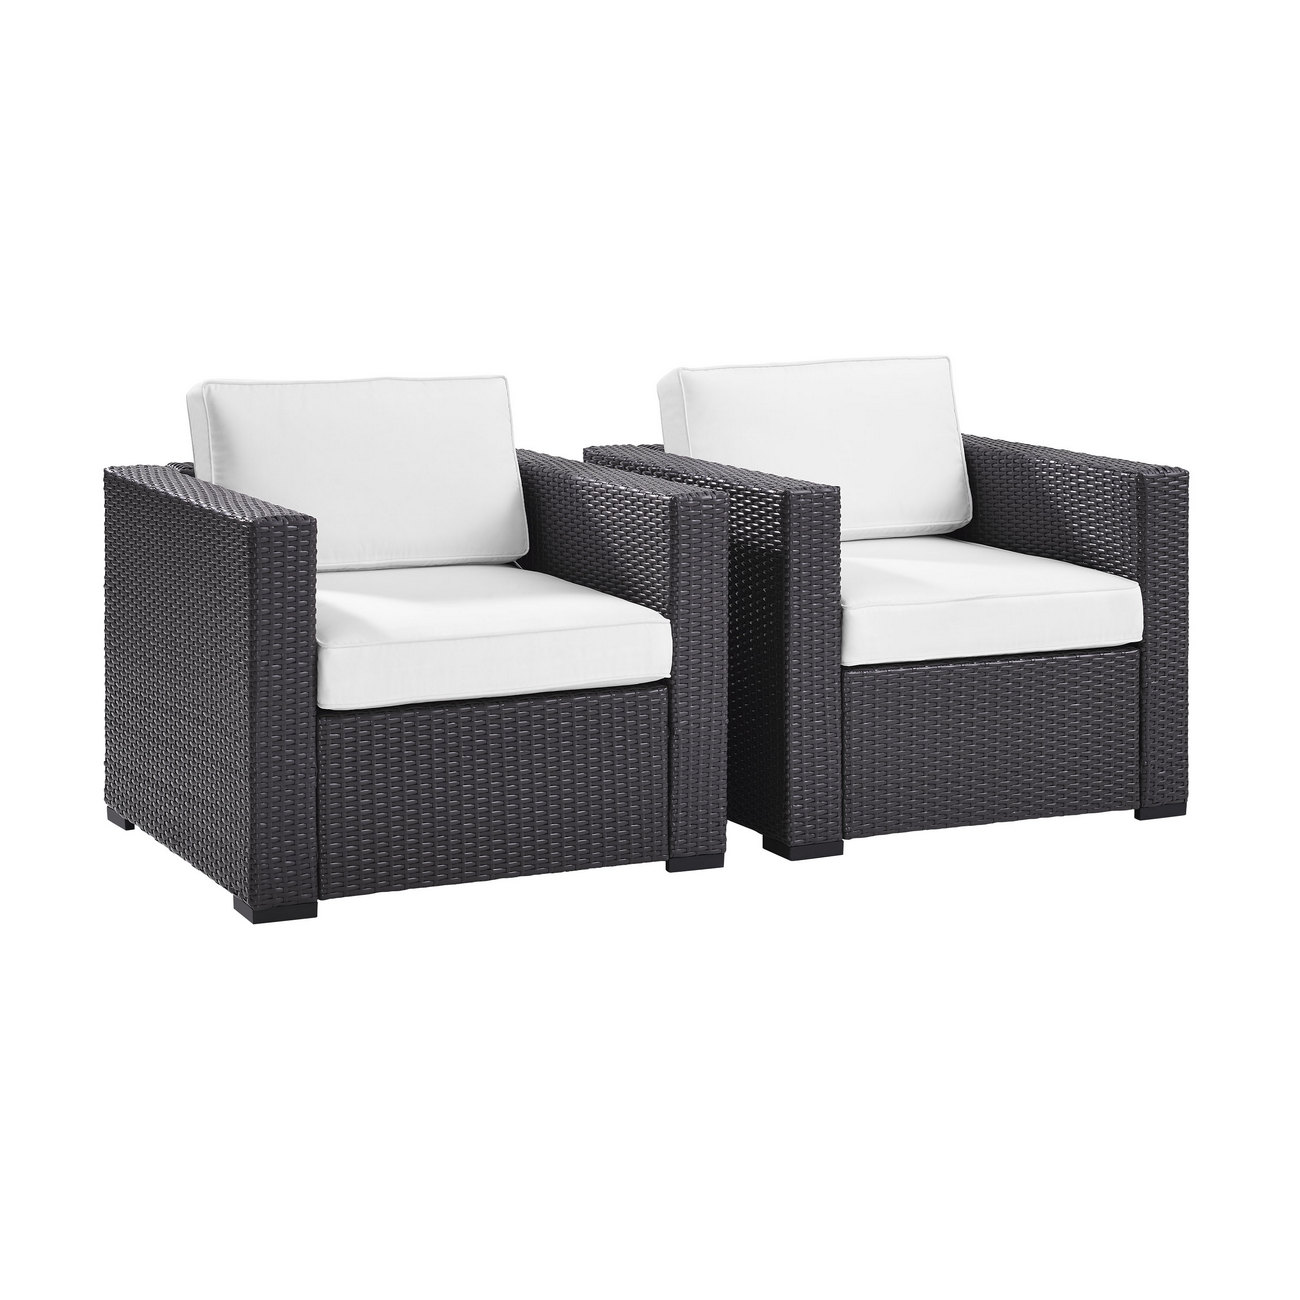 Biscayne 2 Person Outdoor Wicker Seating Set in White - Two Outdoor Wicker Chairs - Crosley KO70103BR-WH